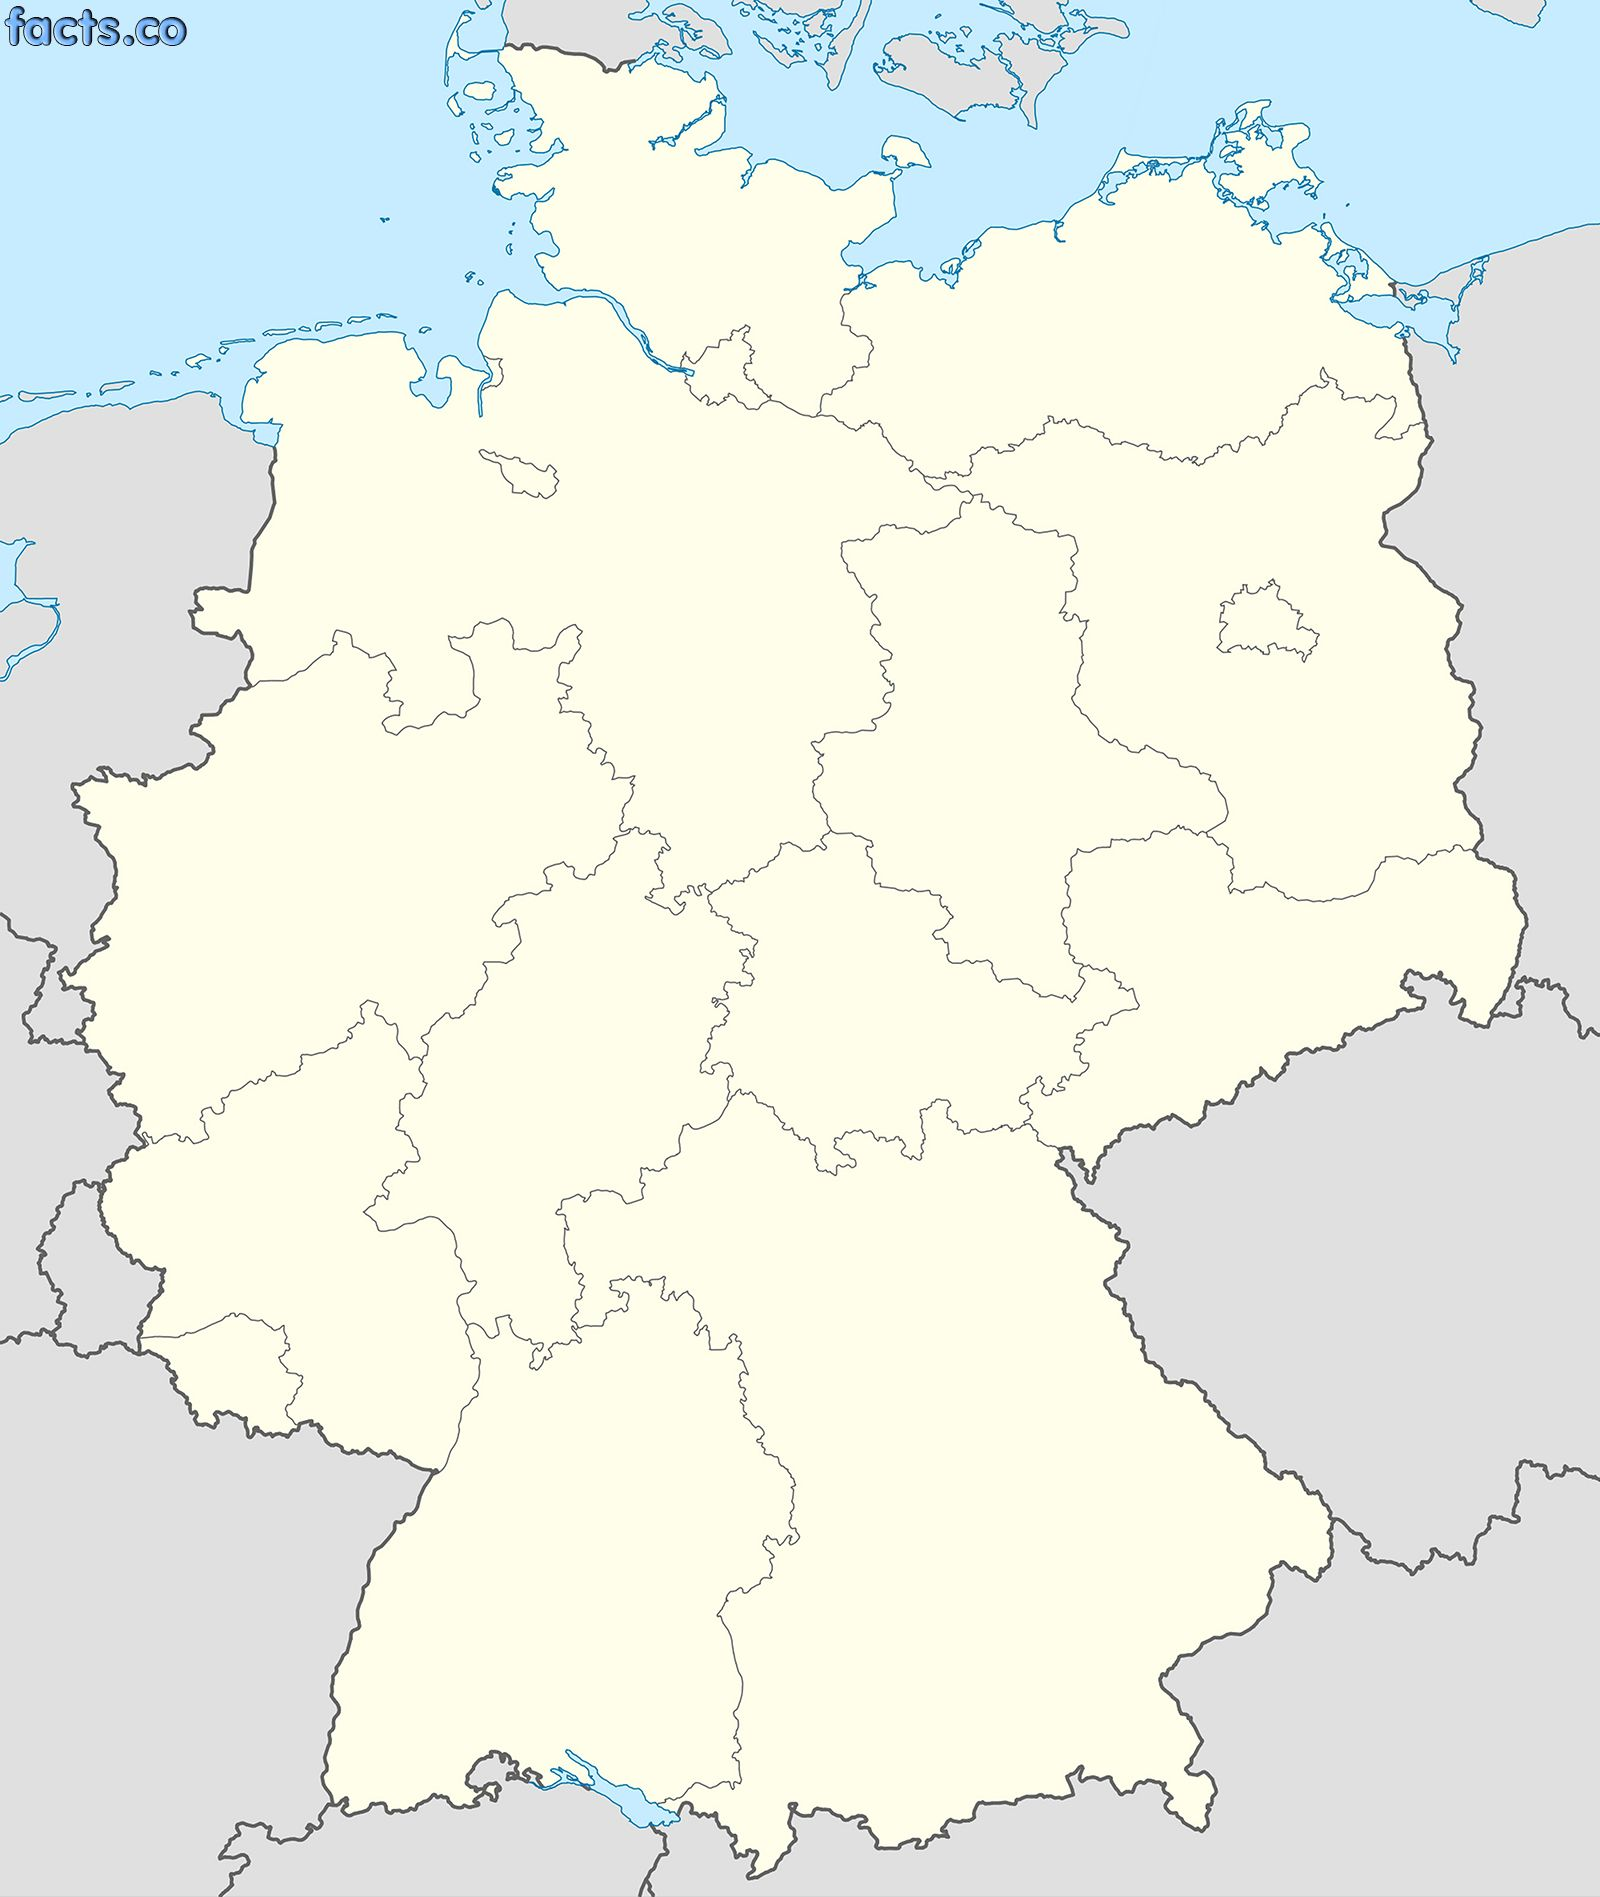 Berlin On Map Of Germany.Blank Physical Map Of Germany Germany Political Map Black And White